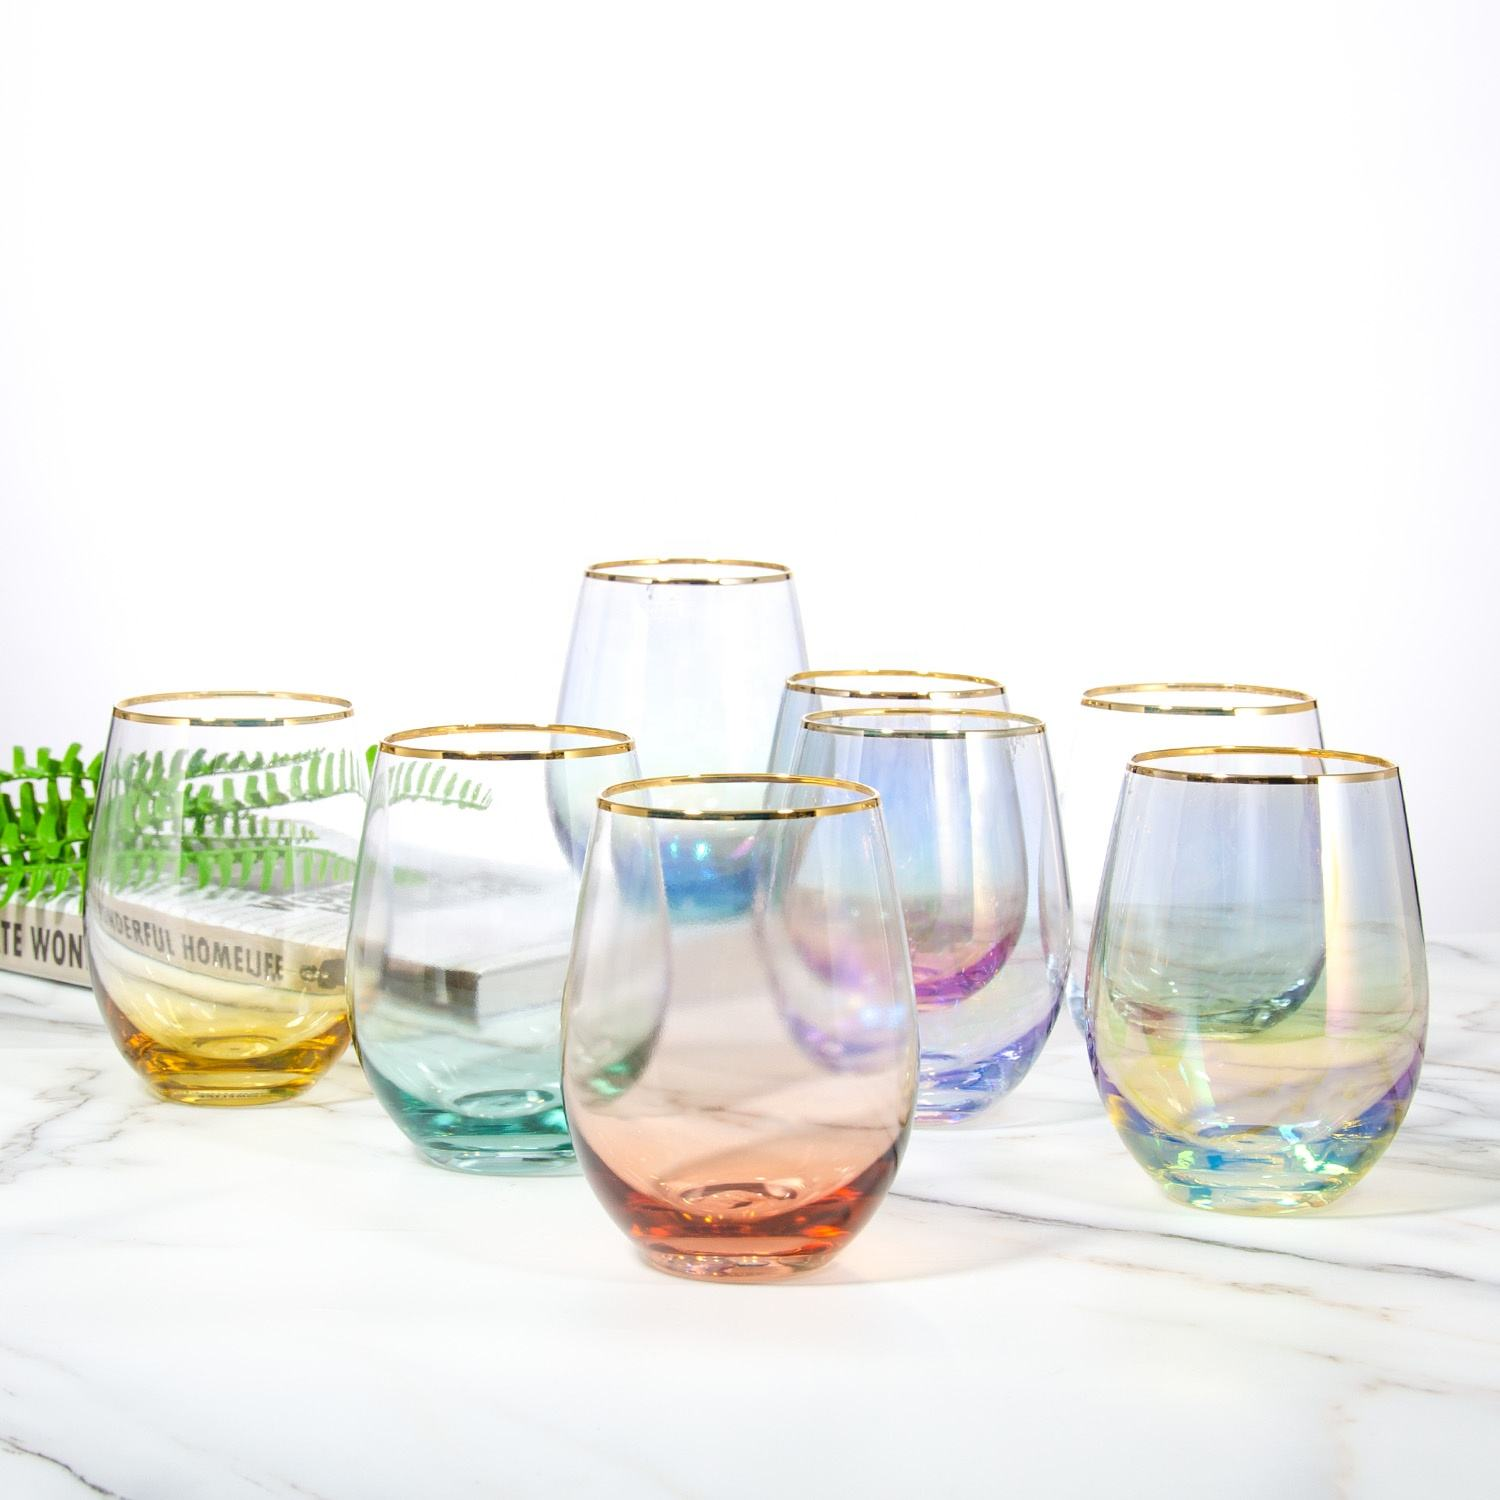 handmade egg shape dishwasher safe stemless wine glasses water glasses set